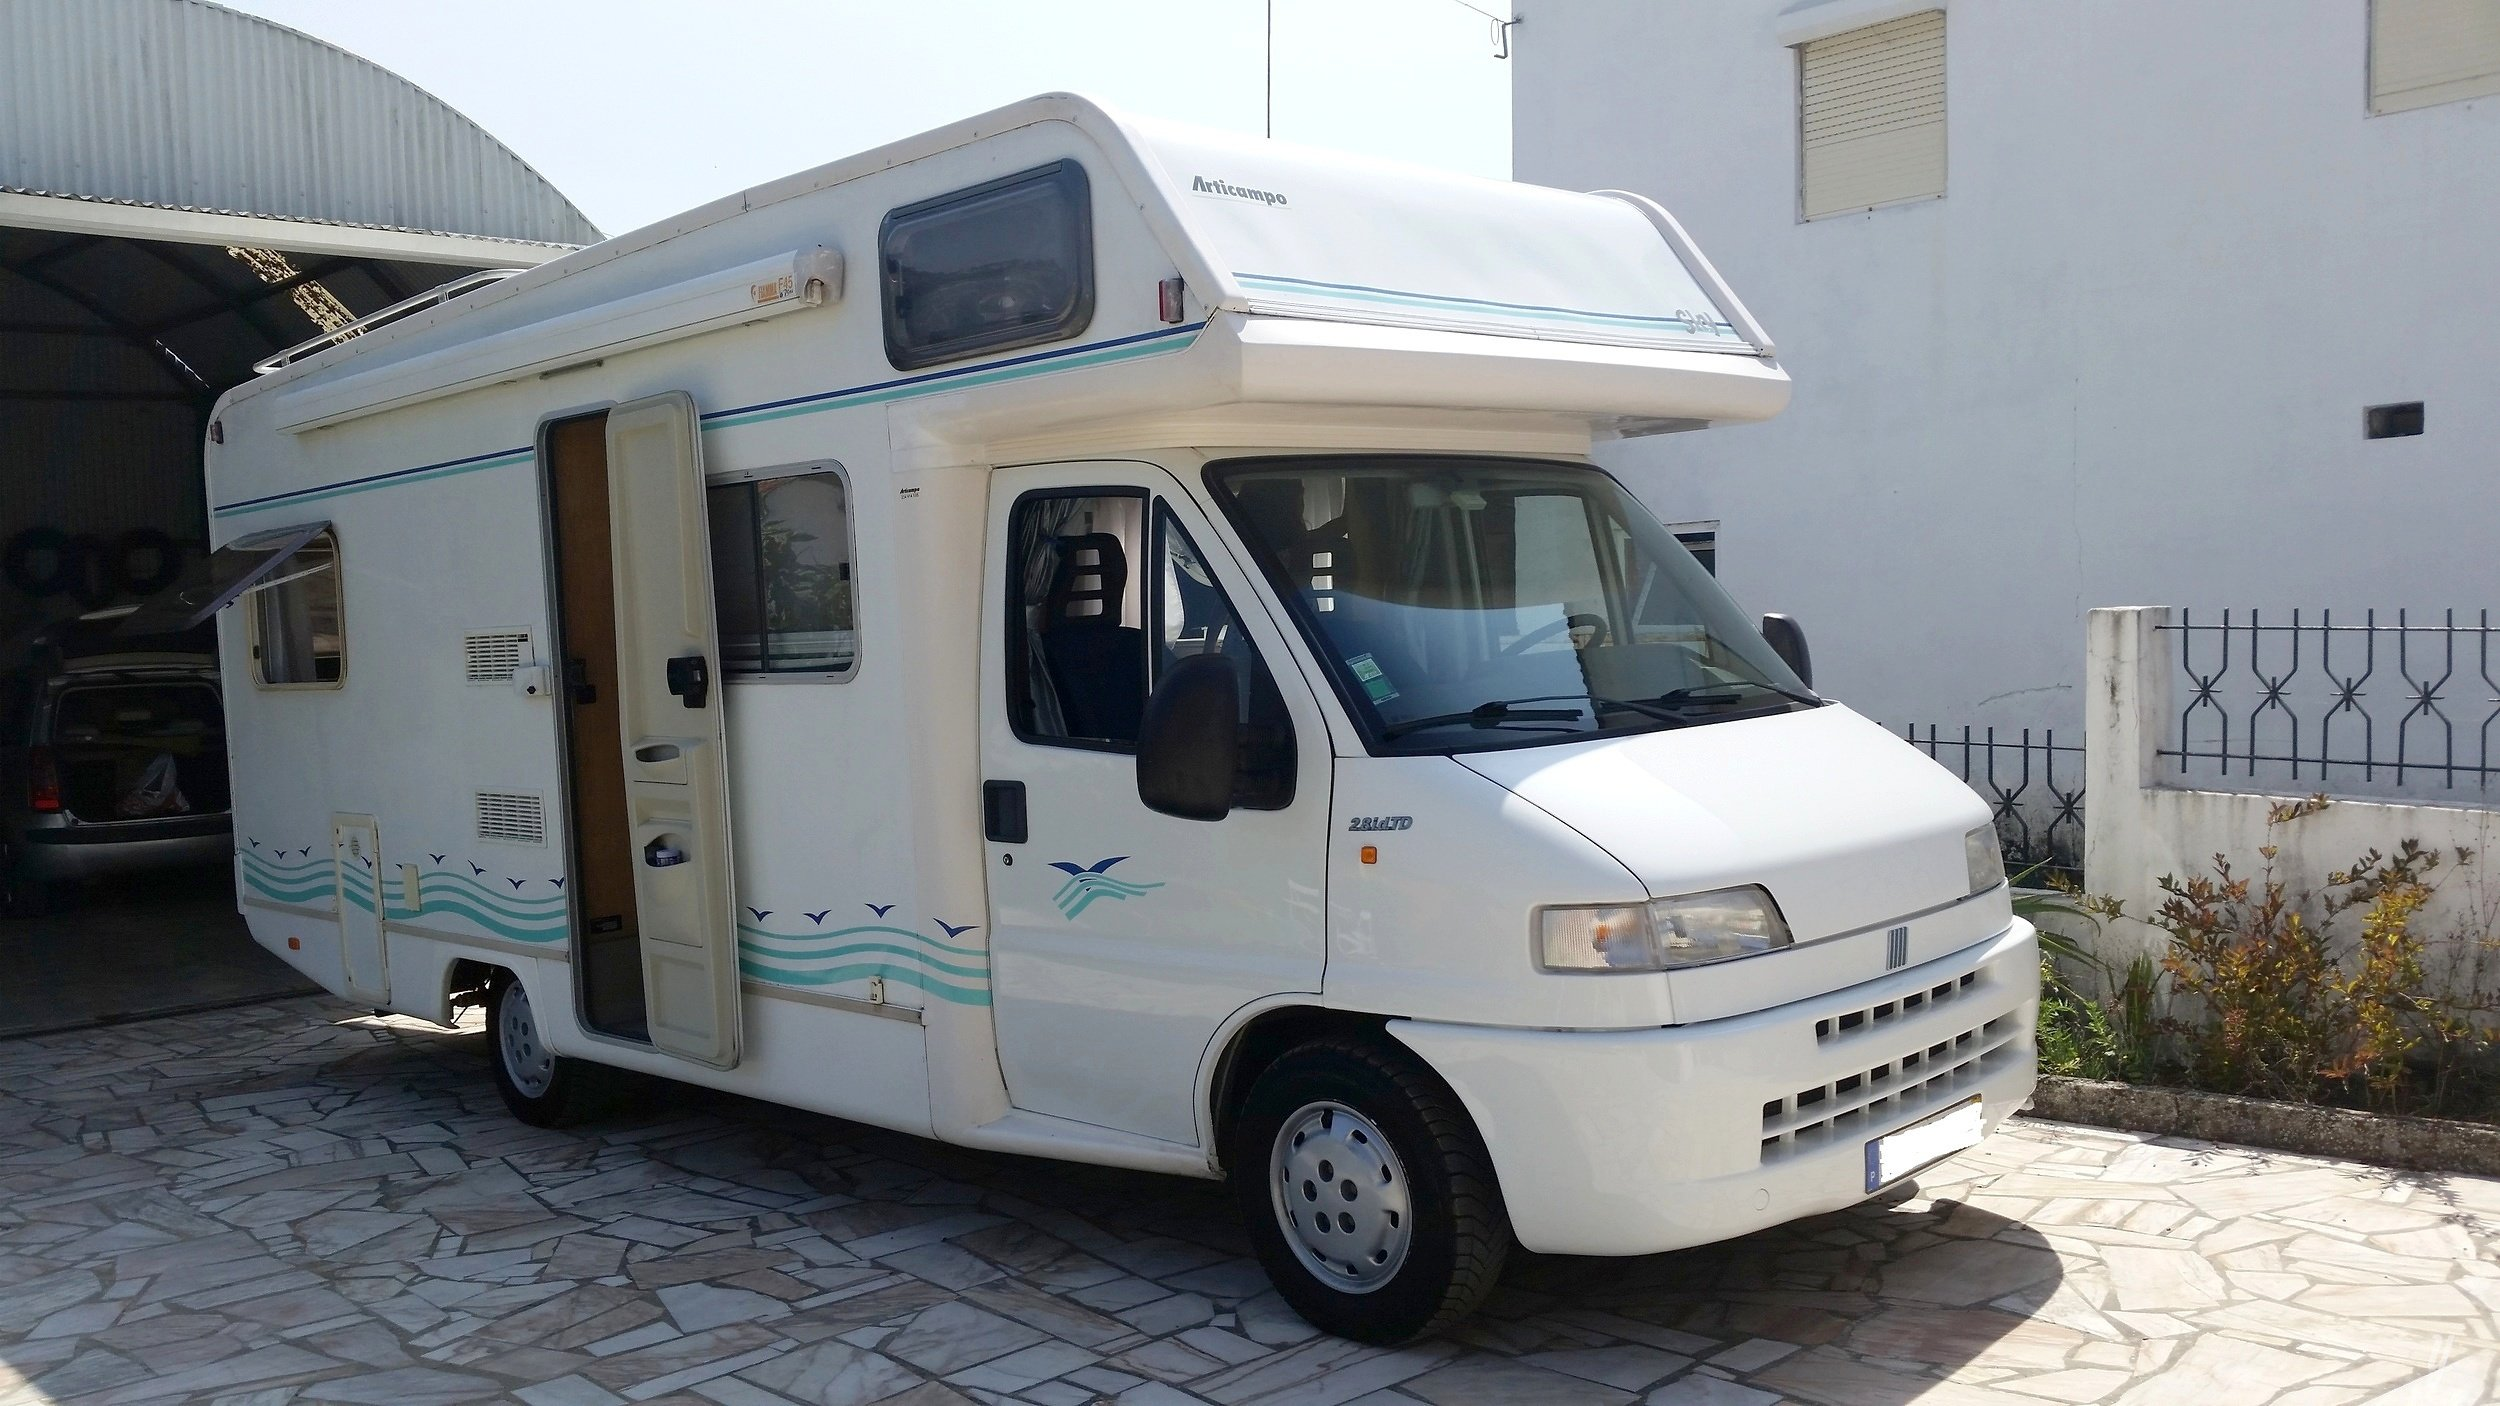 Location Camping Car Capucine Odivelas Fiat Ducato 14 Tds Chassis Cabina 230blmac 2001 Yescapa